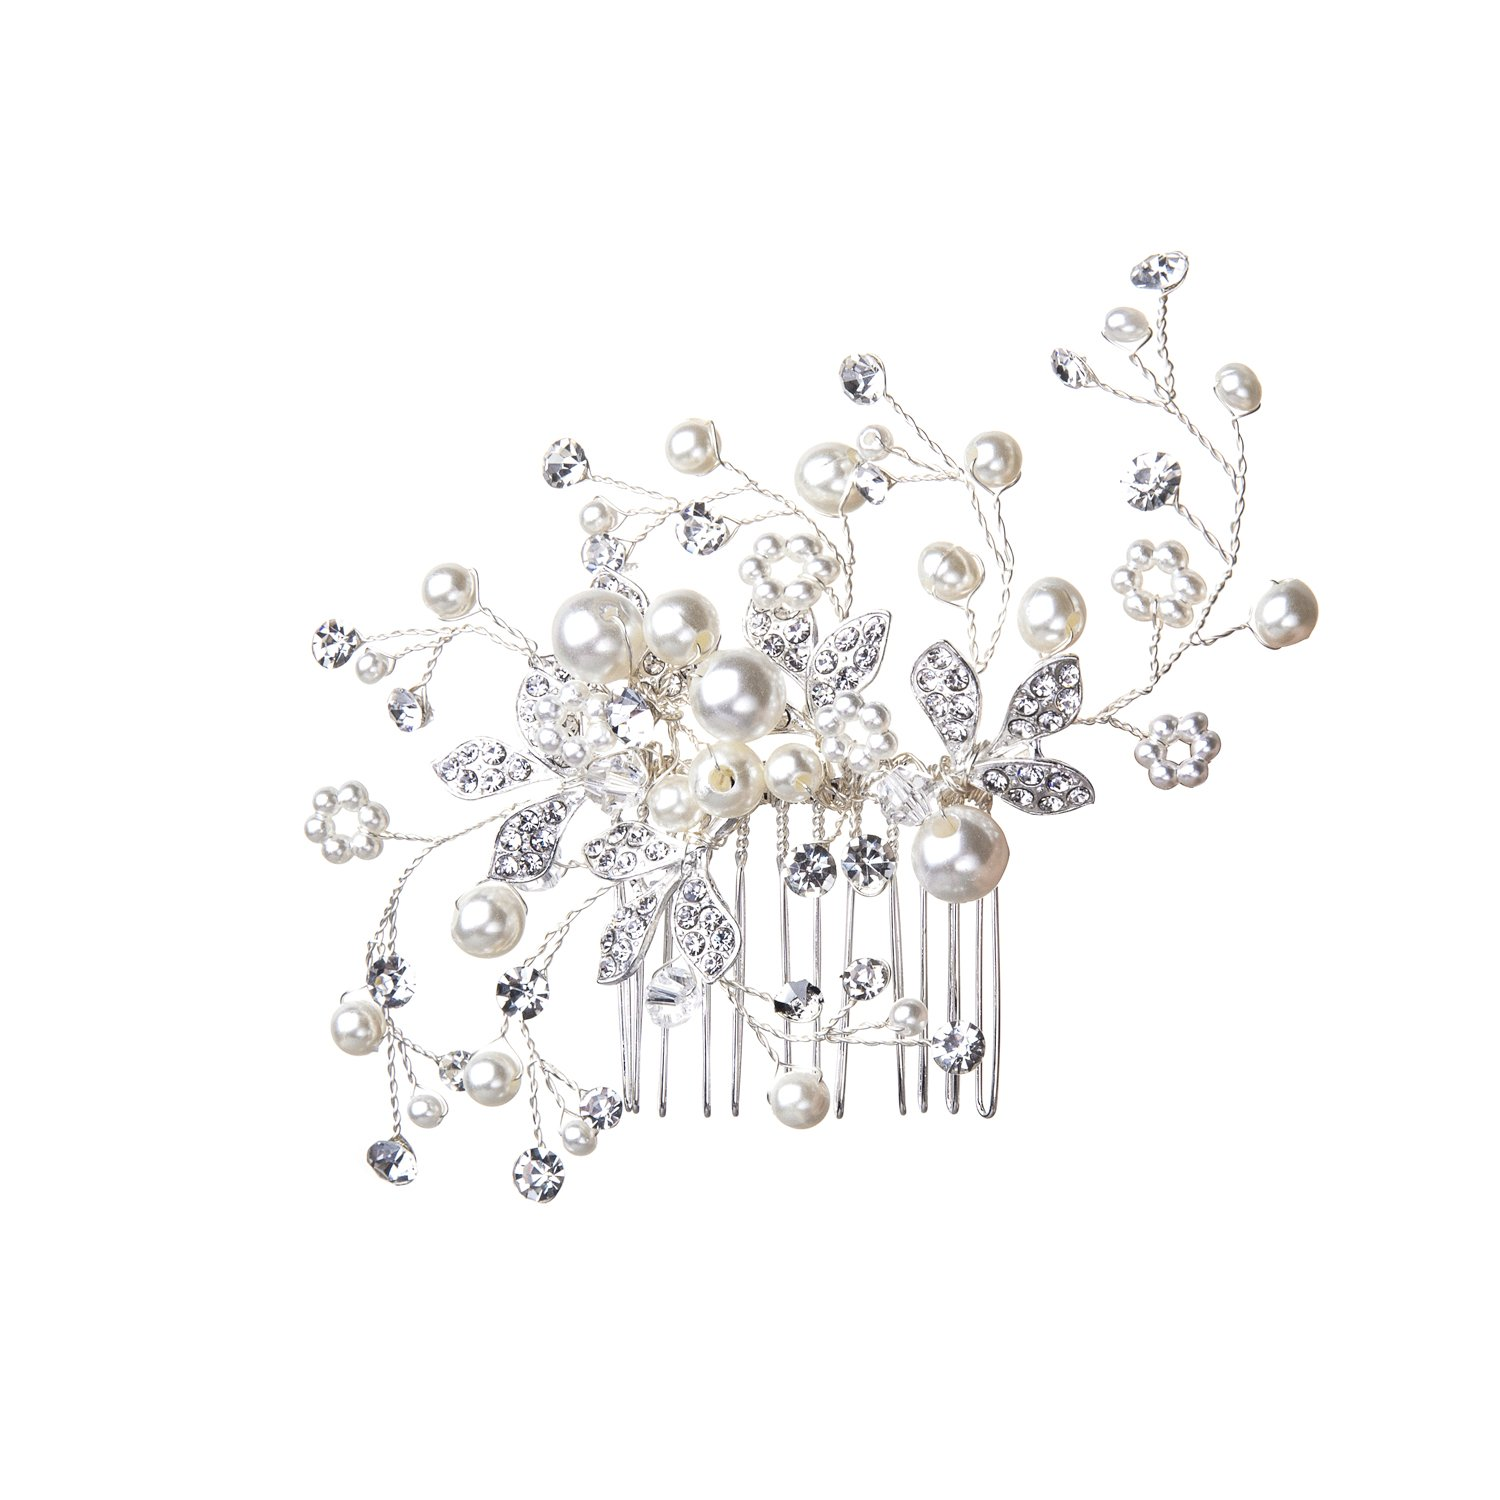 Feyarl Handmade Pearl Rhinestone Crystal Bridal Hair Side Comb Wedding Headpiece, Decorative Combs(Silver)